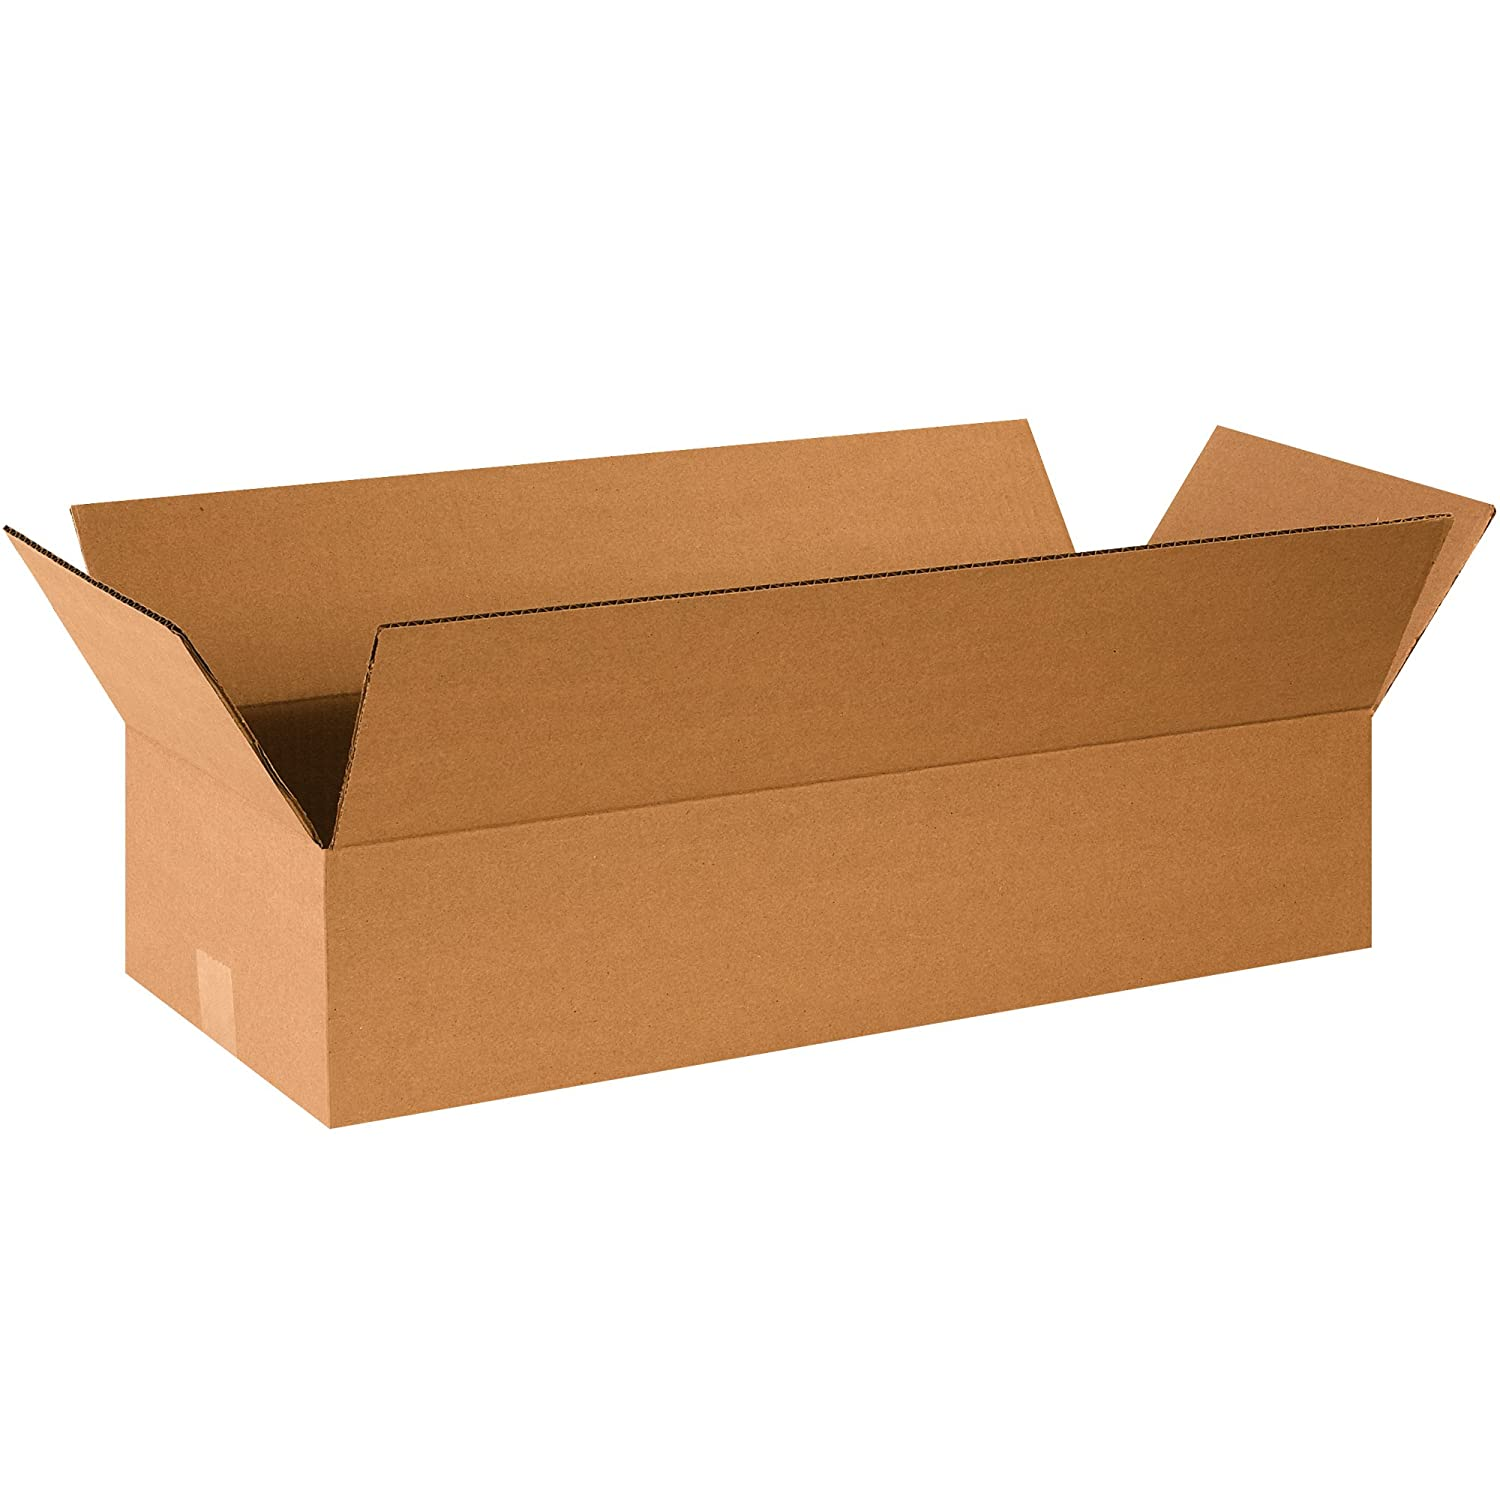 Kraft 9L x 6W x 3H Partners Brand P963 Flat Corrugated Boxes Pack of 25